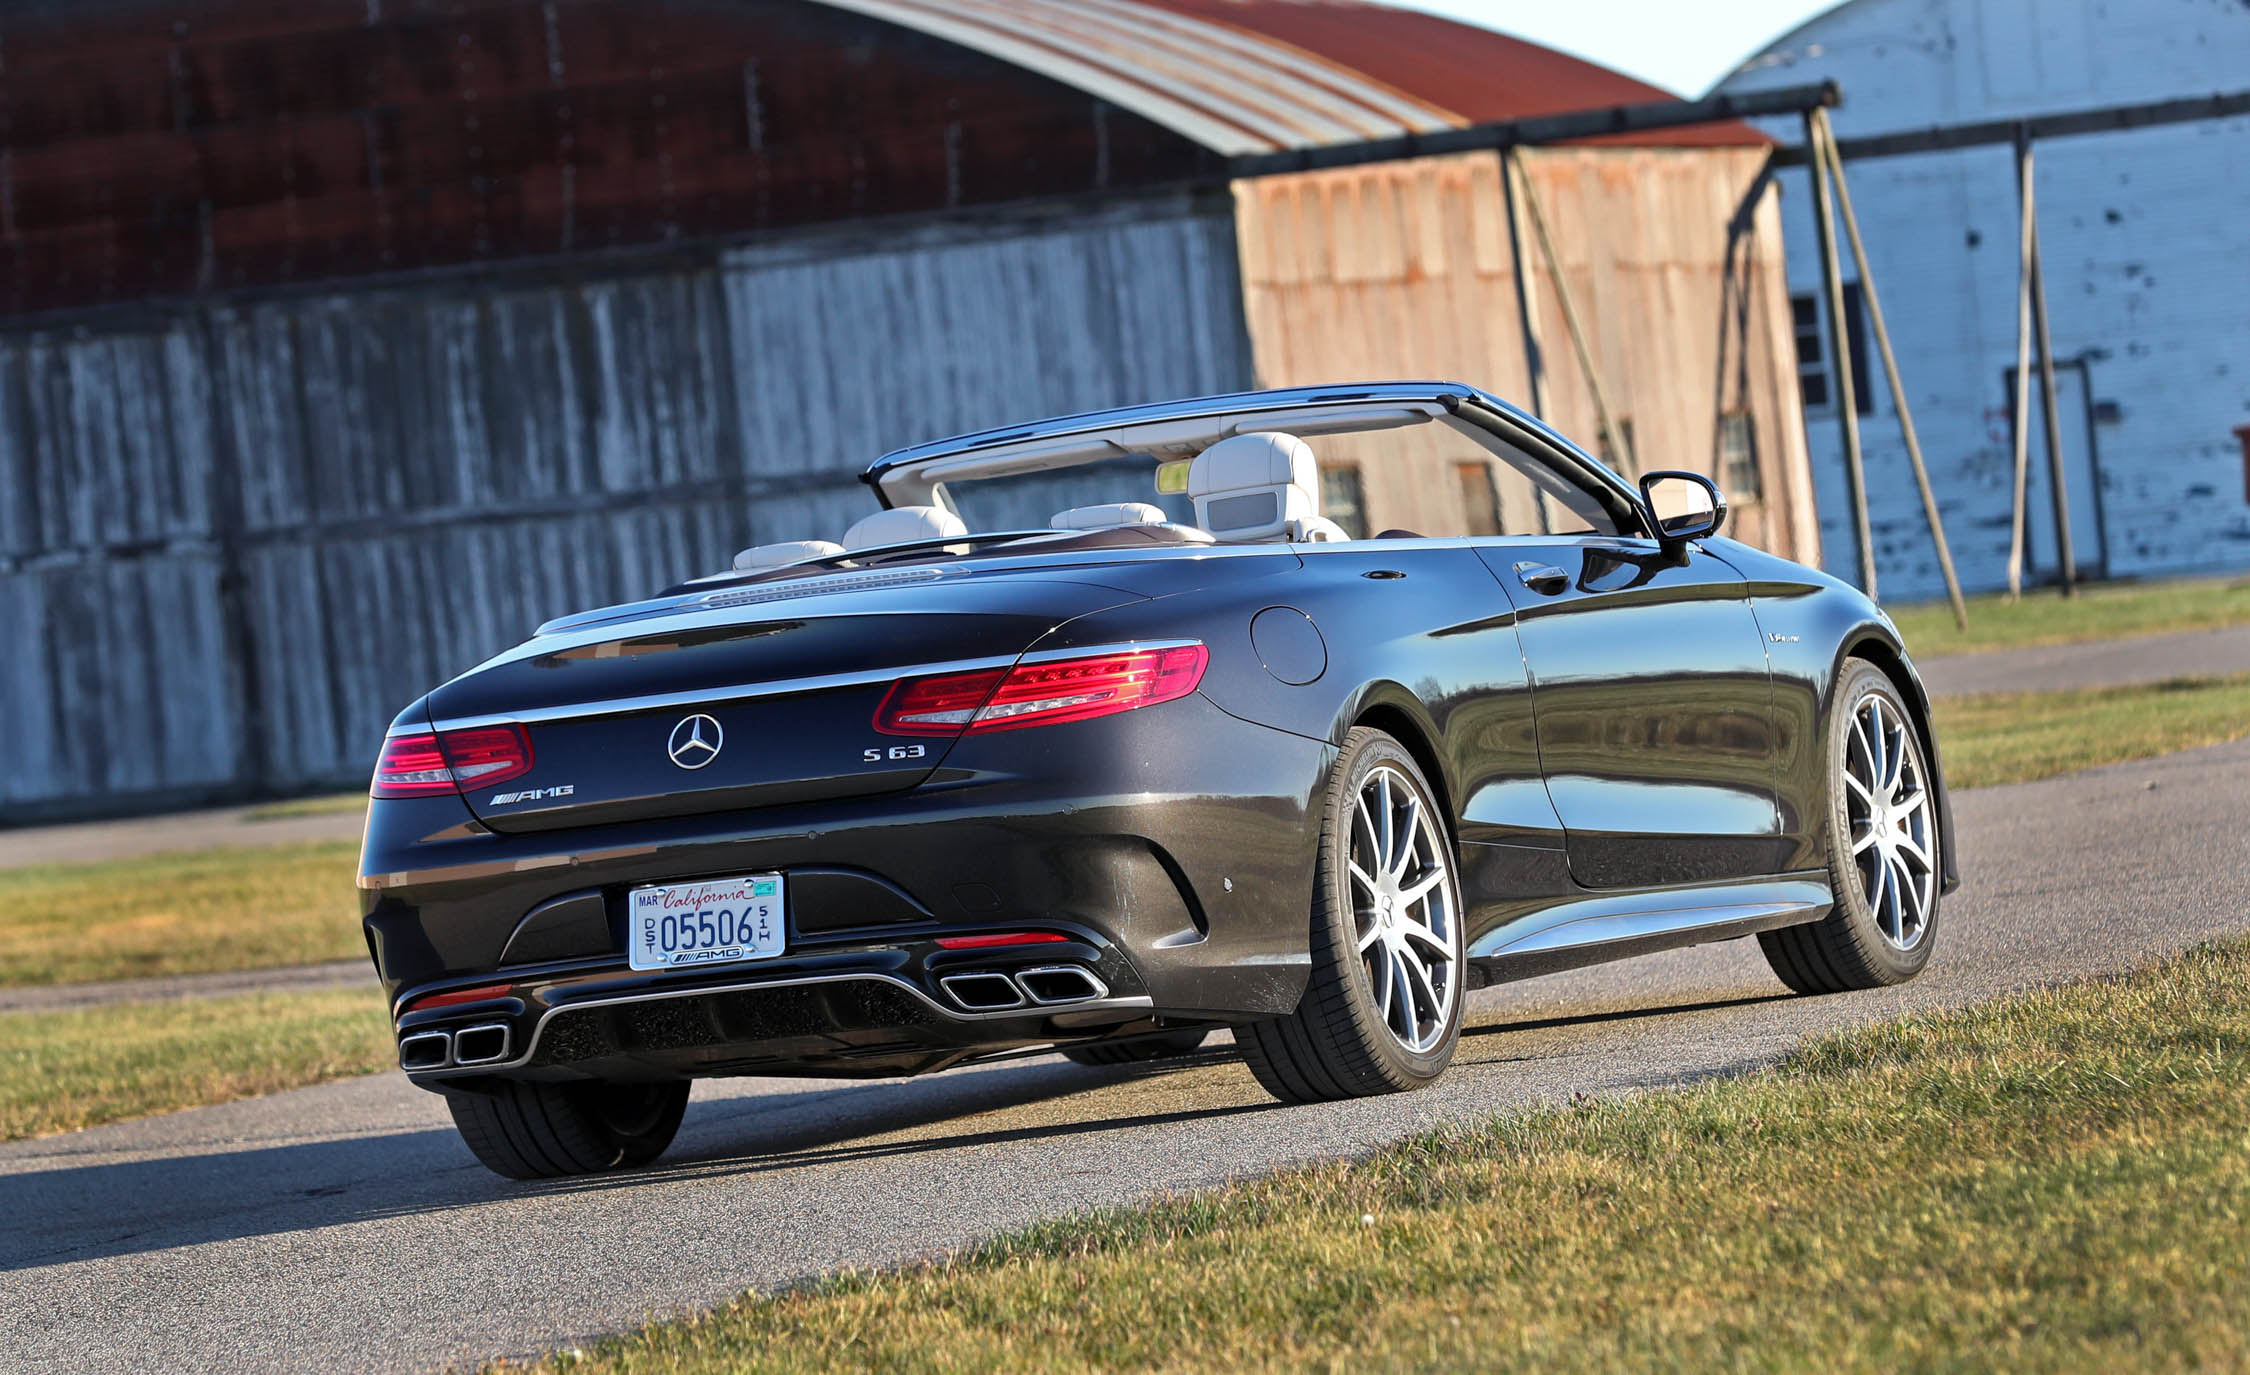 2017 Mercedes Amg S63 Cabriolet Exterior Rear Corner (Photo 9 of 38)